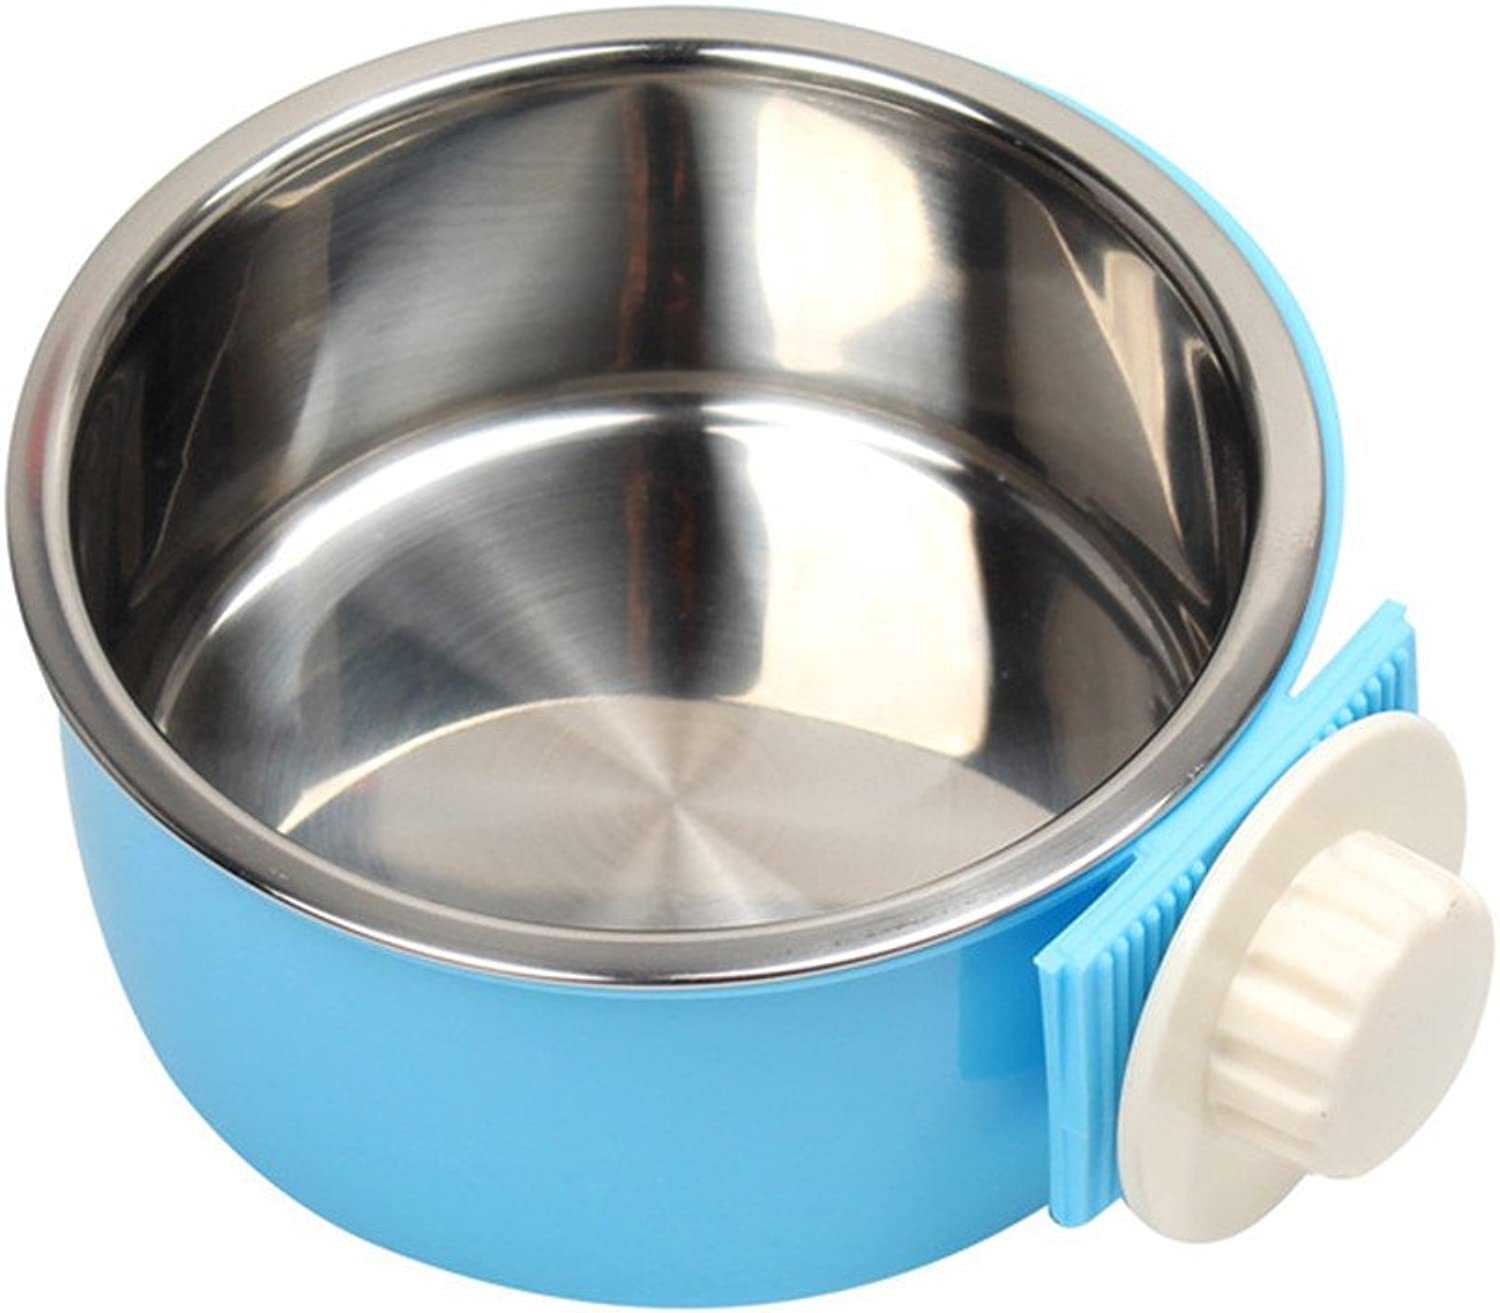 ForeverYou Pet Food Bowl Hanging Stainless Steel Dog Bowl Fixed cat Pot cat Bowl, bluee